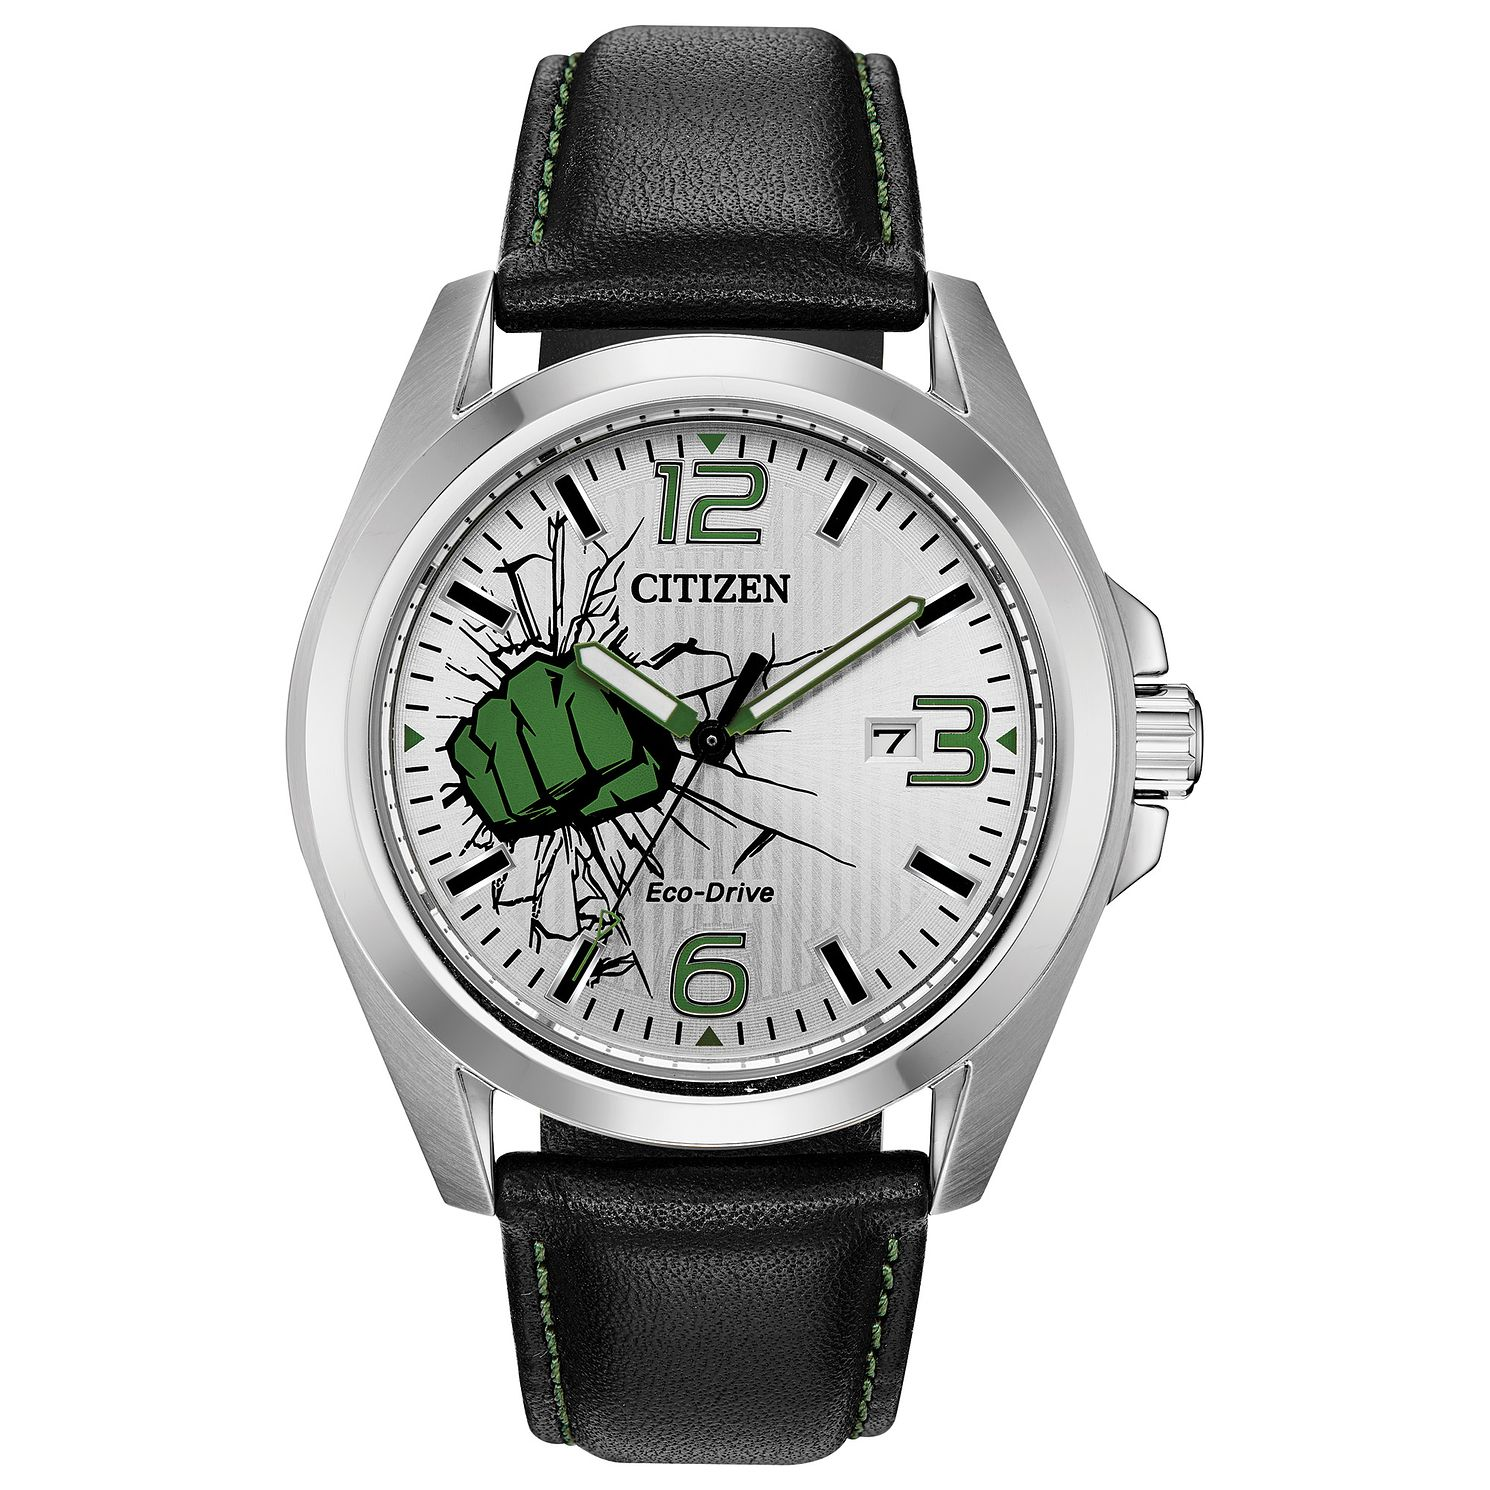 Citizen Marvel Hulk Black Leather Strap Watch - Product number 4089499